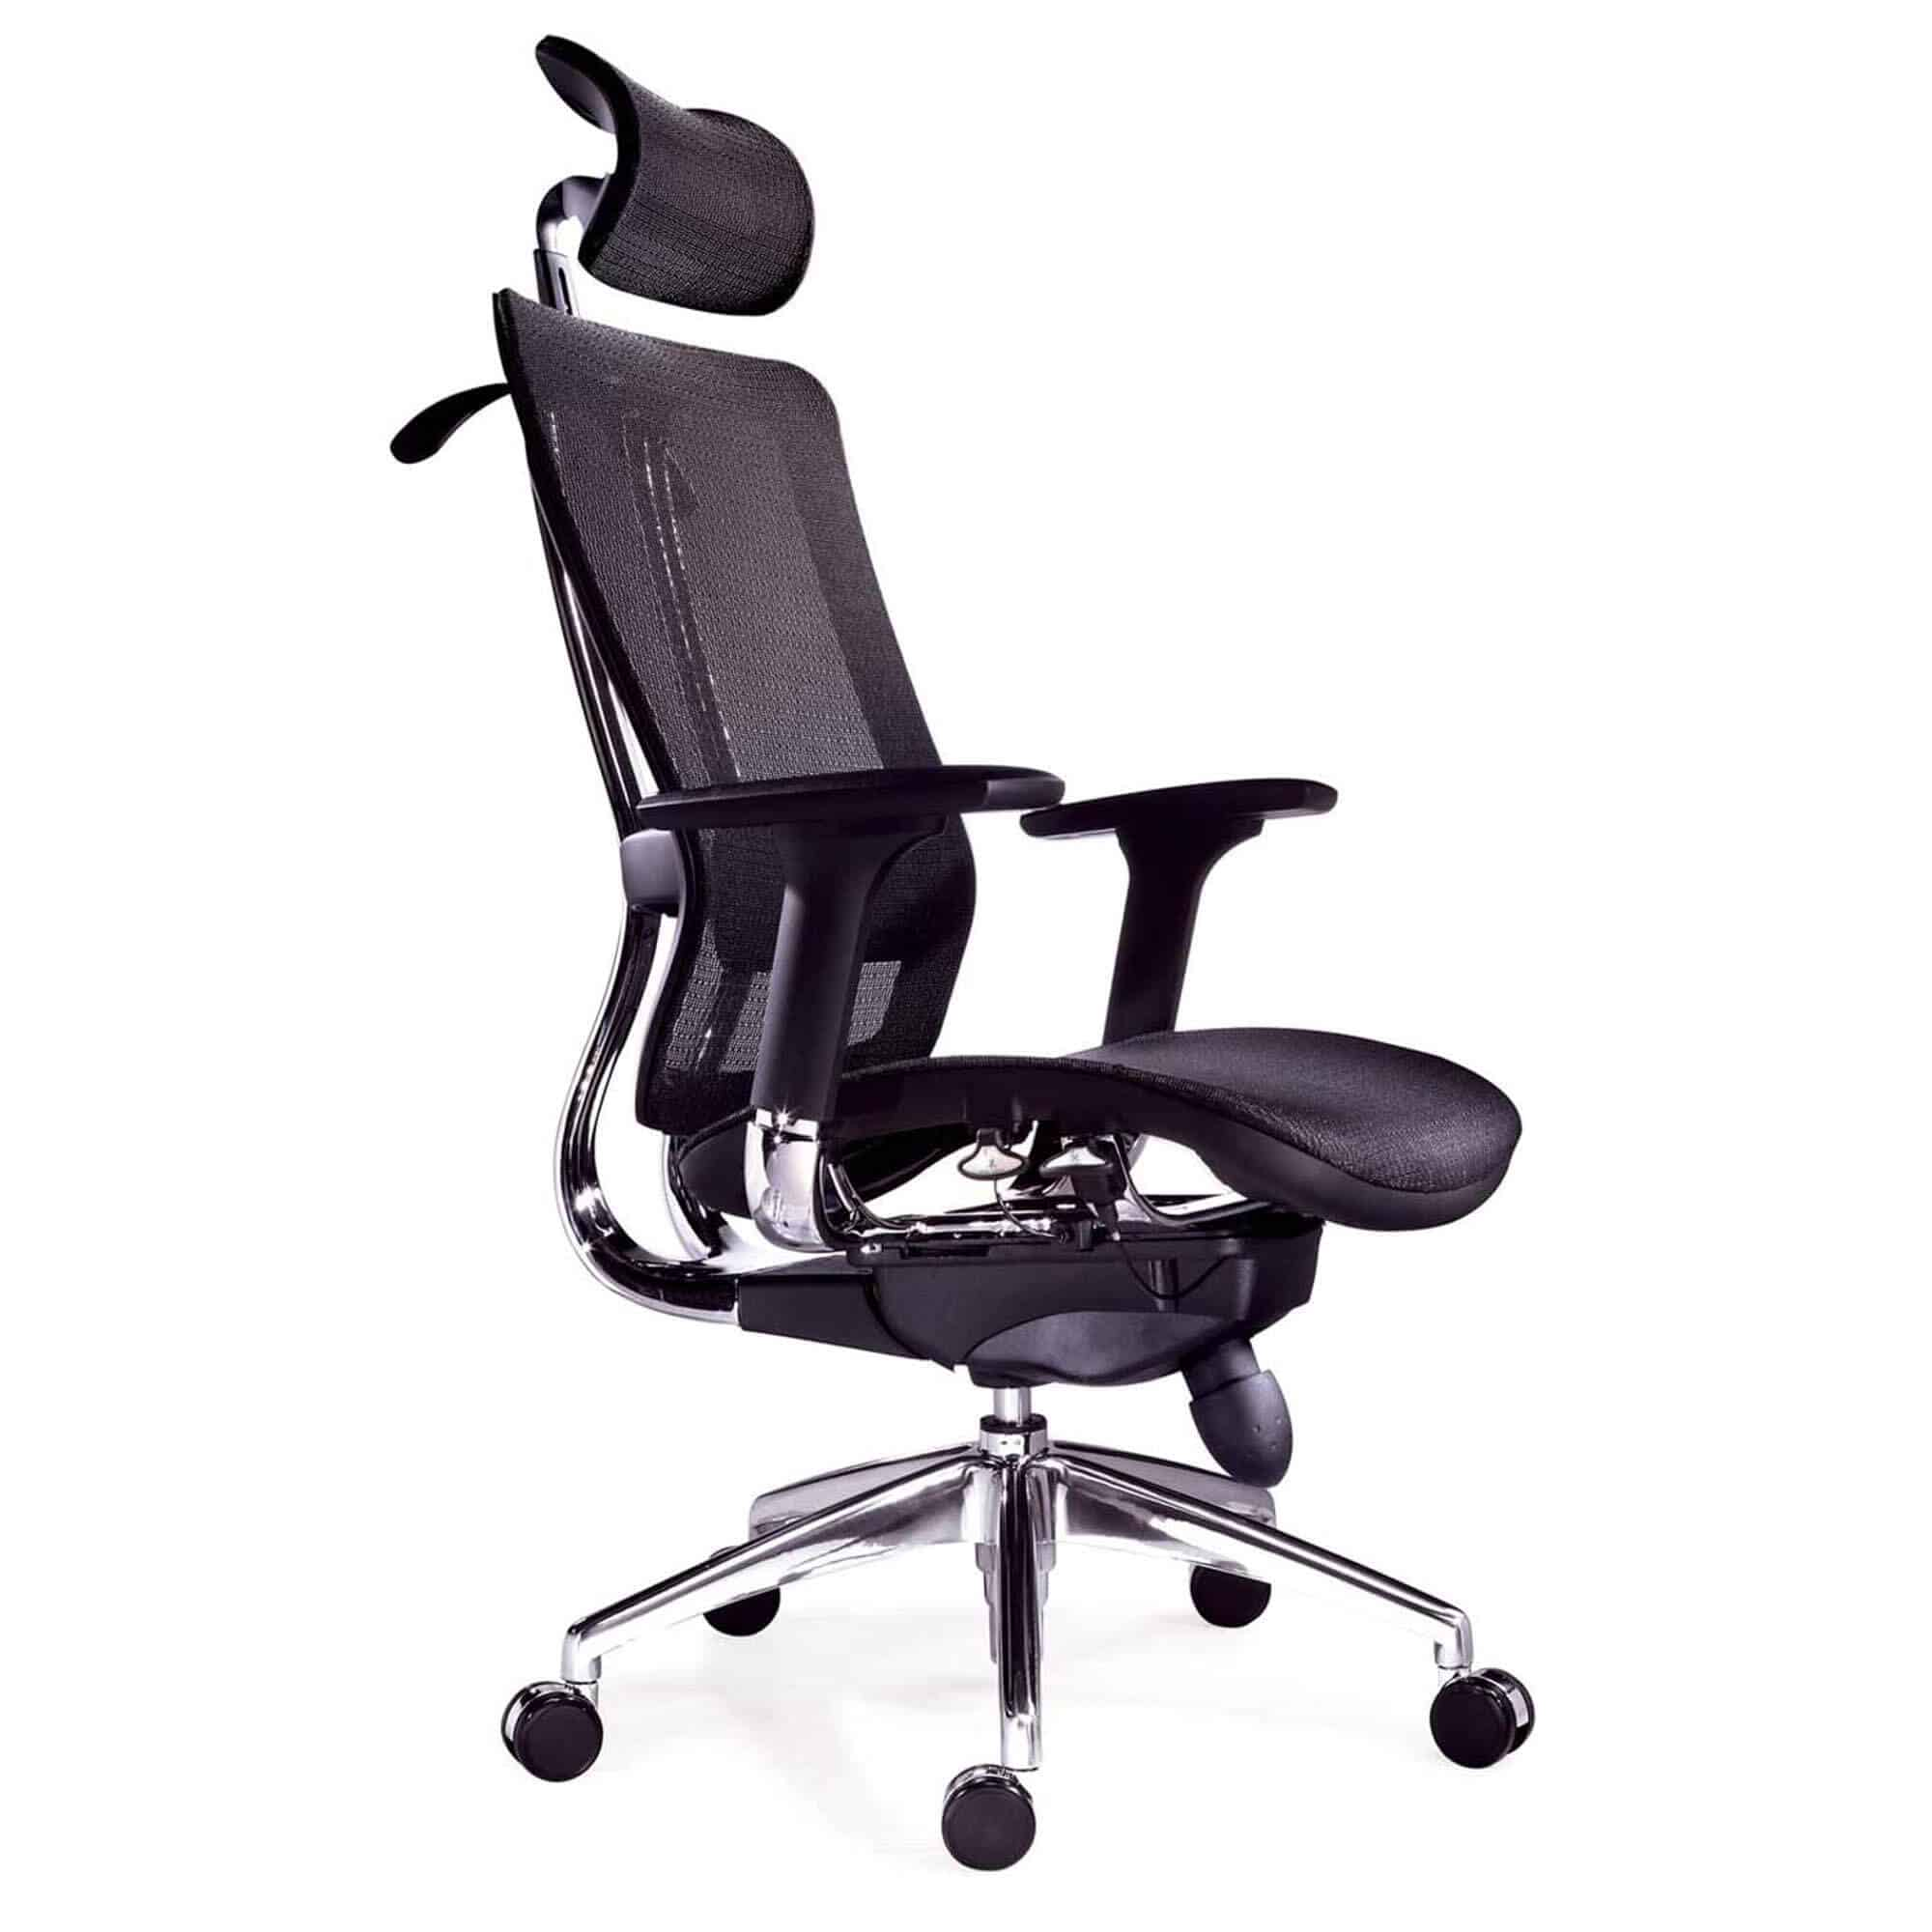 Best Ergonomic Office Chairs Office Chair Guide And How To Buy A Desk Chair 43 Top 10